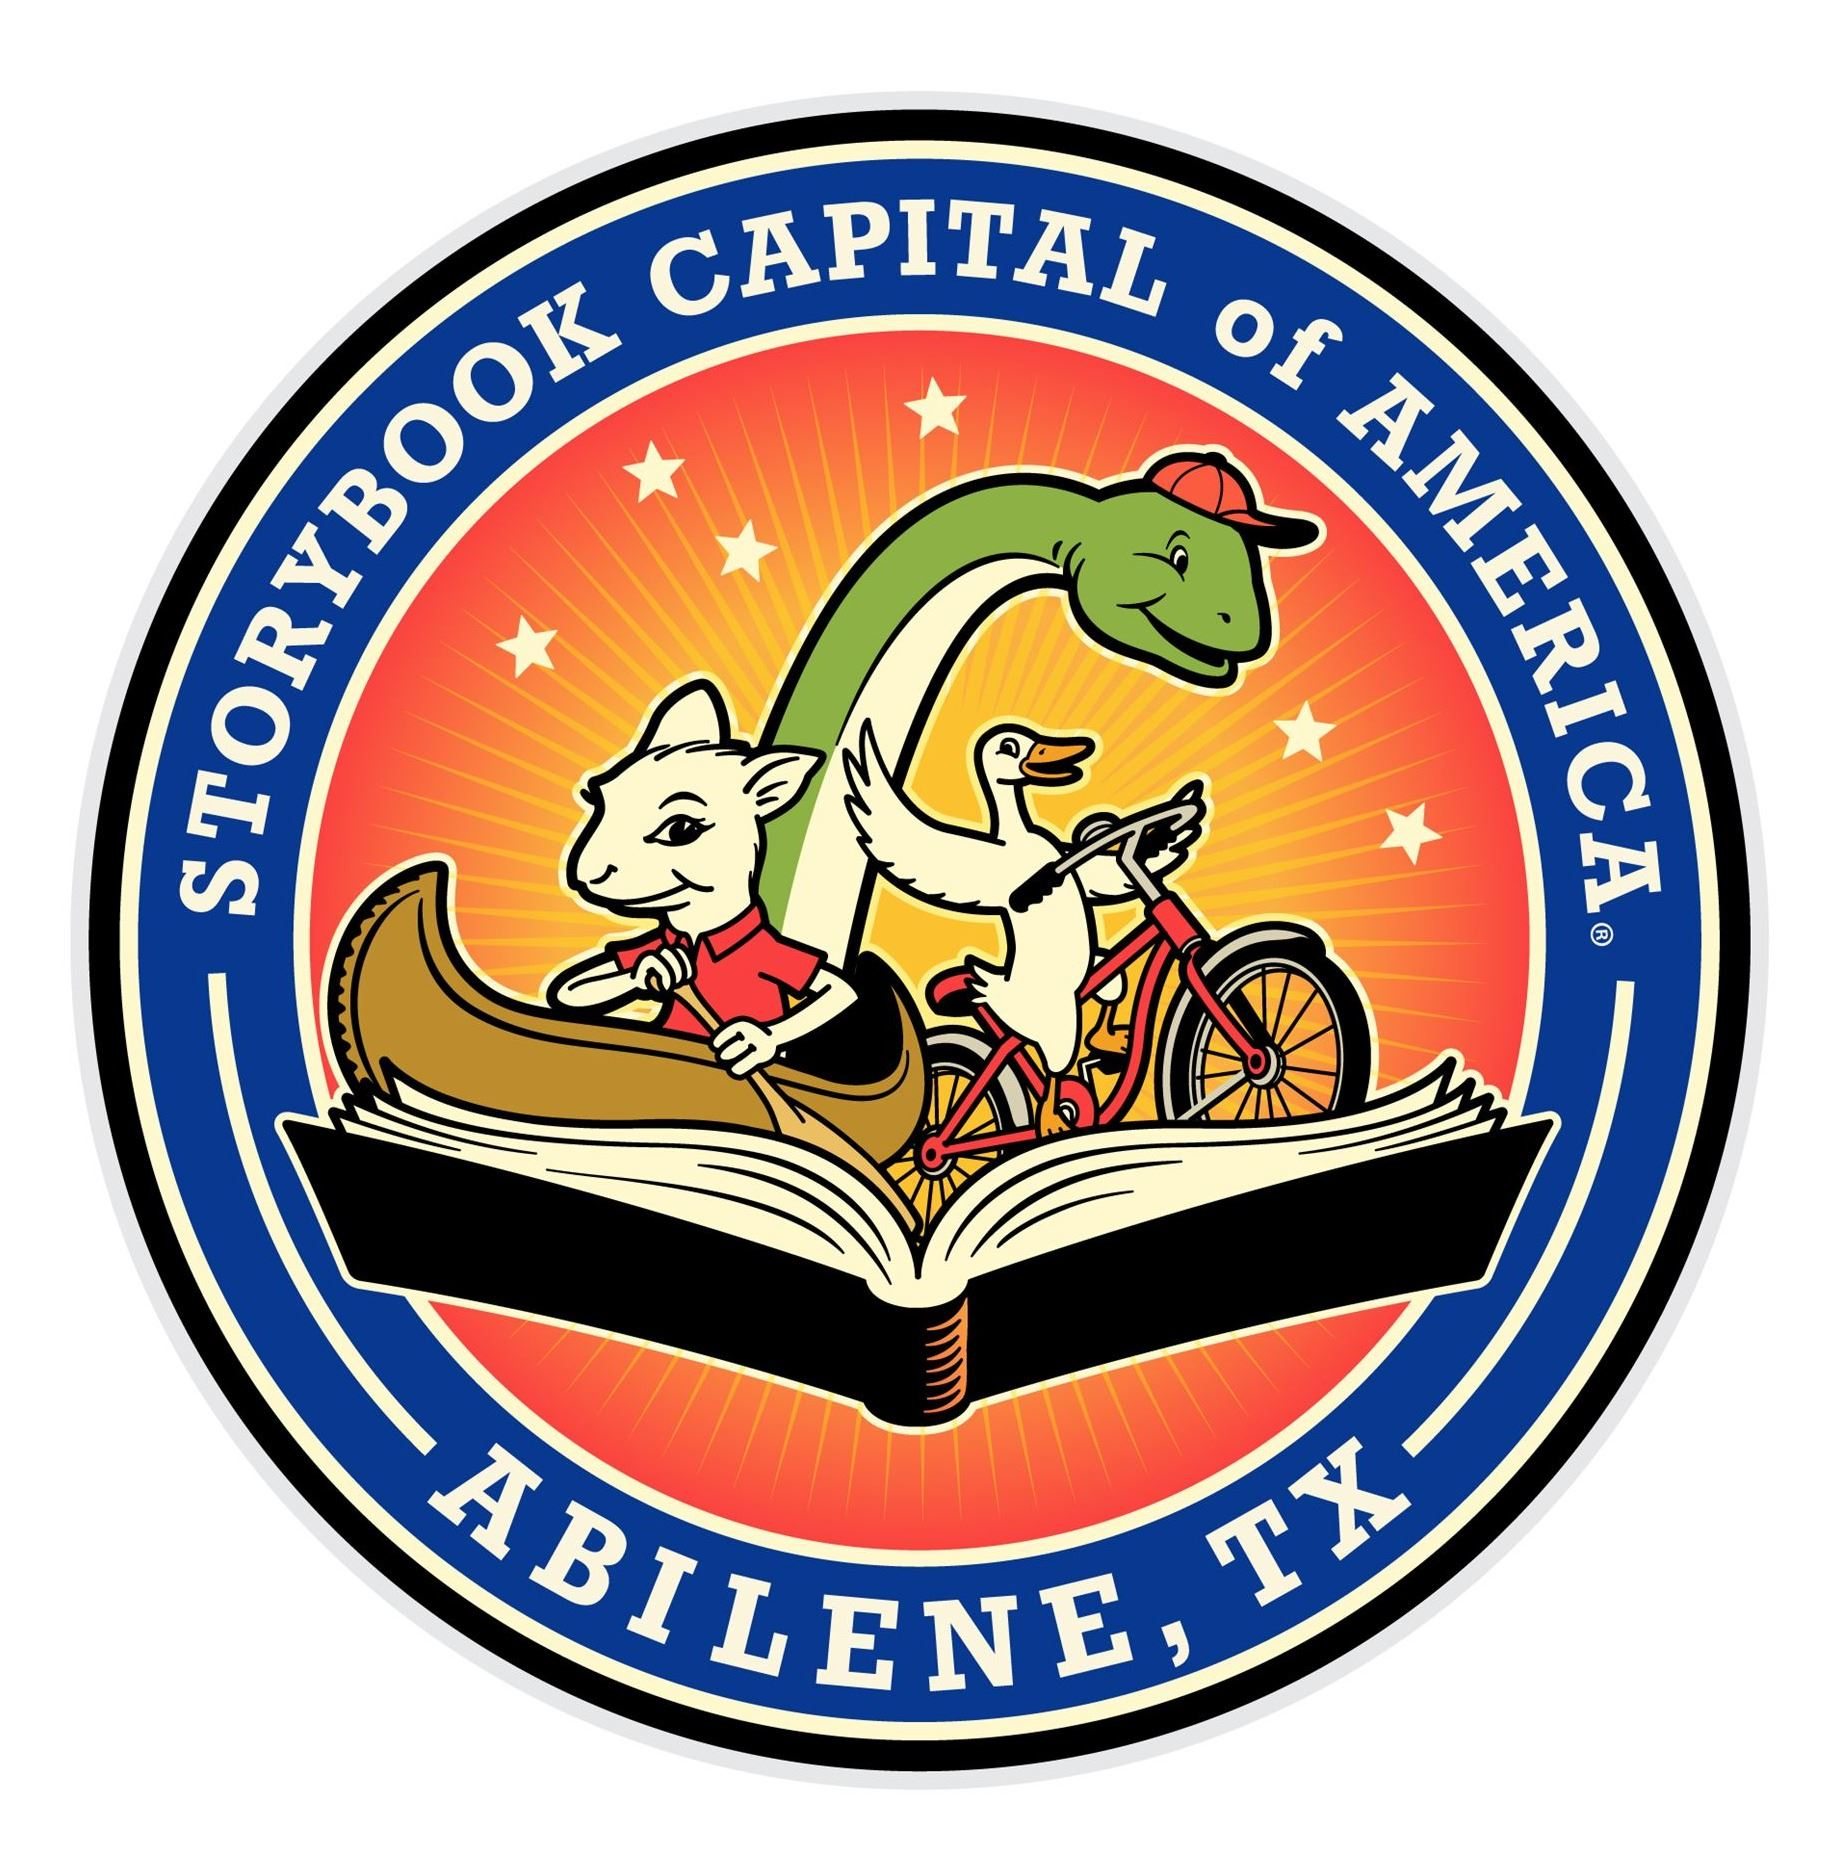 Graphic design image of logo for Storybook Capital of America